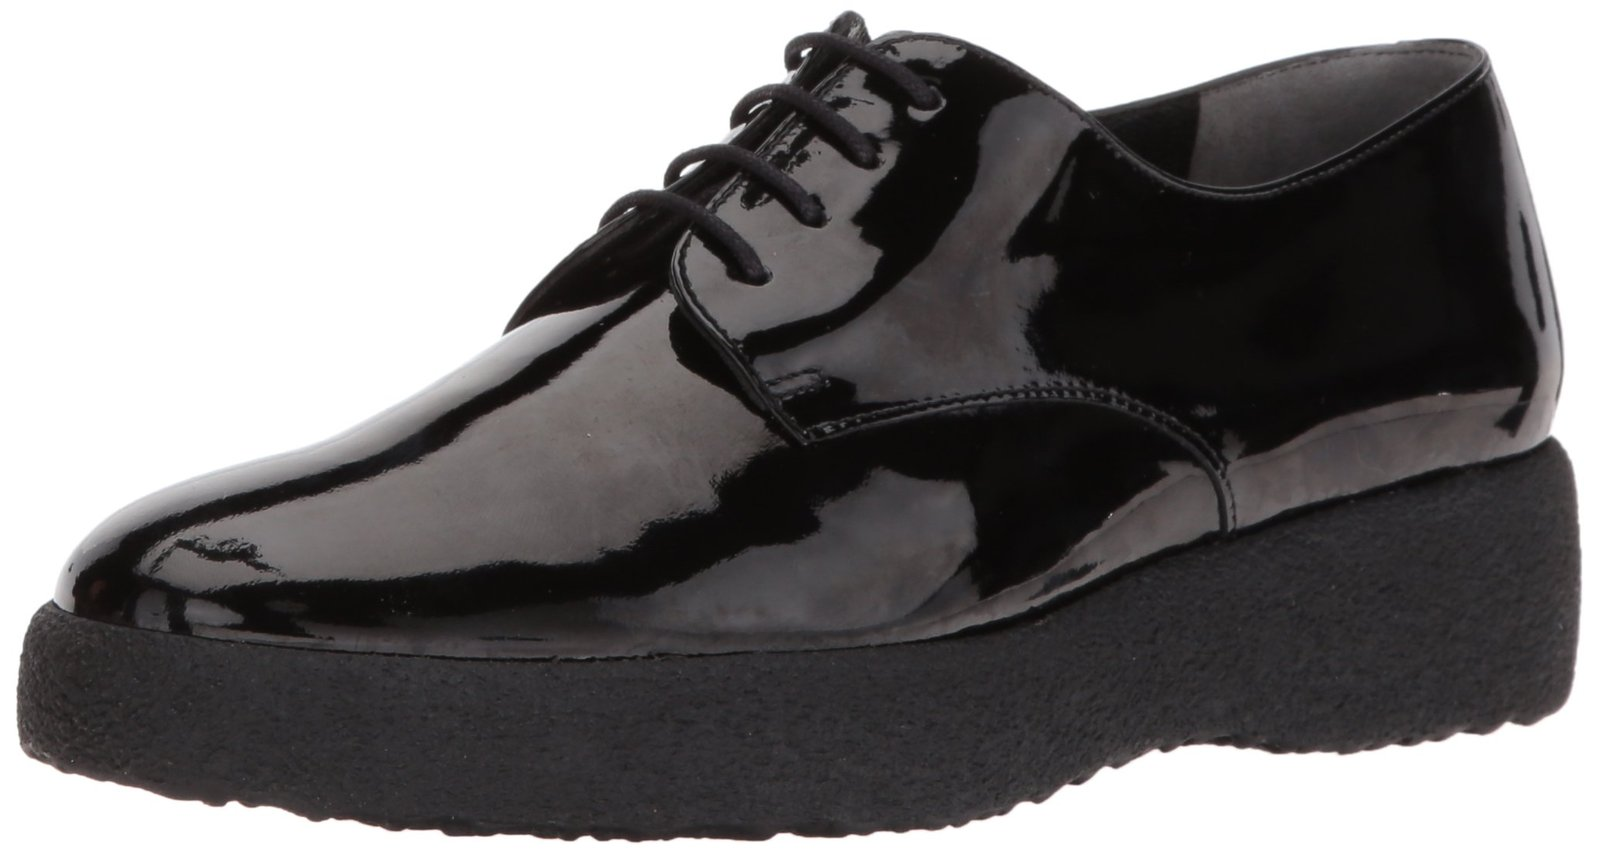 Robert Clergerie Women's Feydol Oxford, Black Patent, 37.5 EU/7 B US